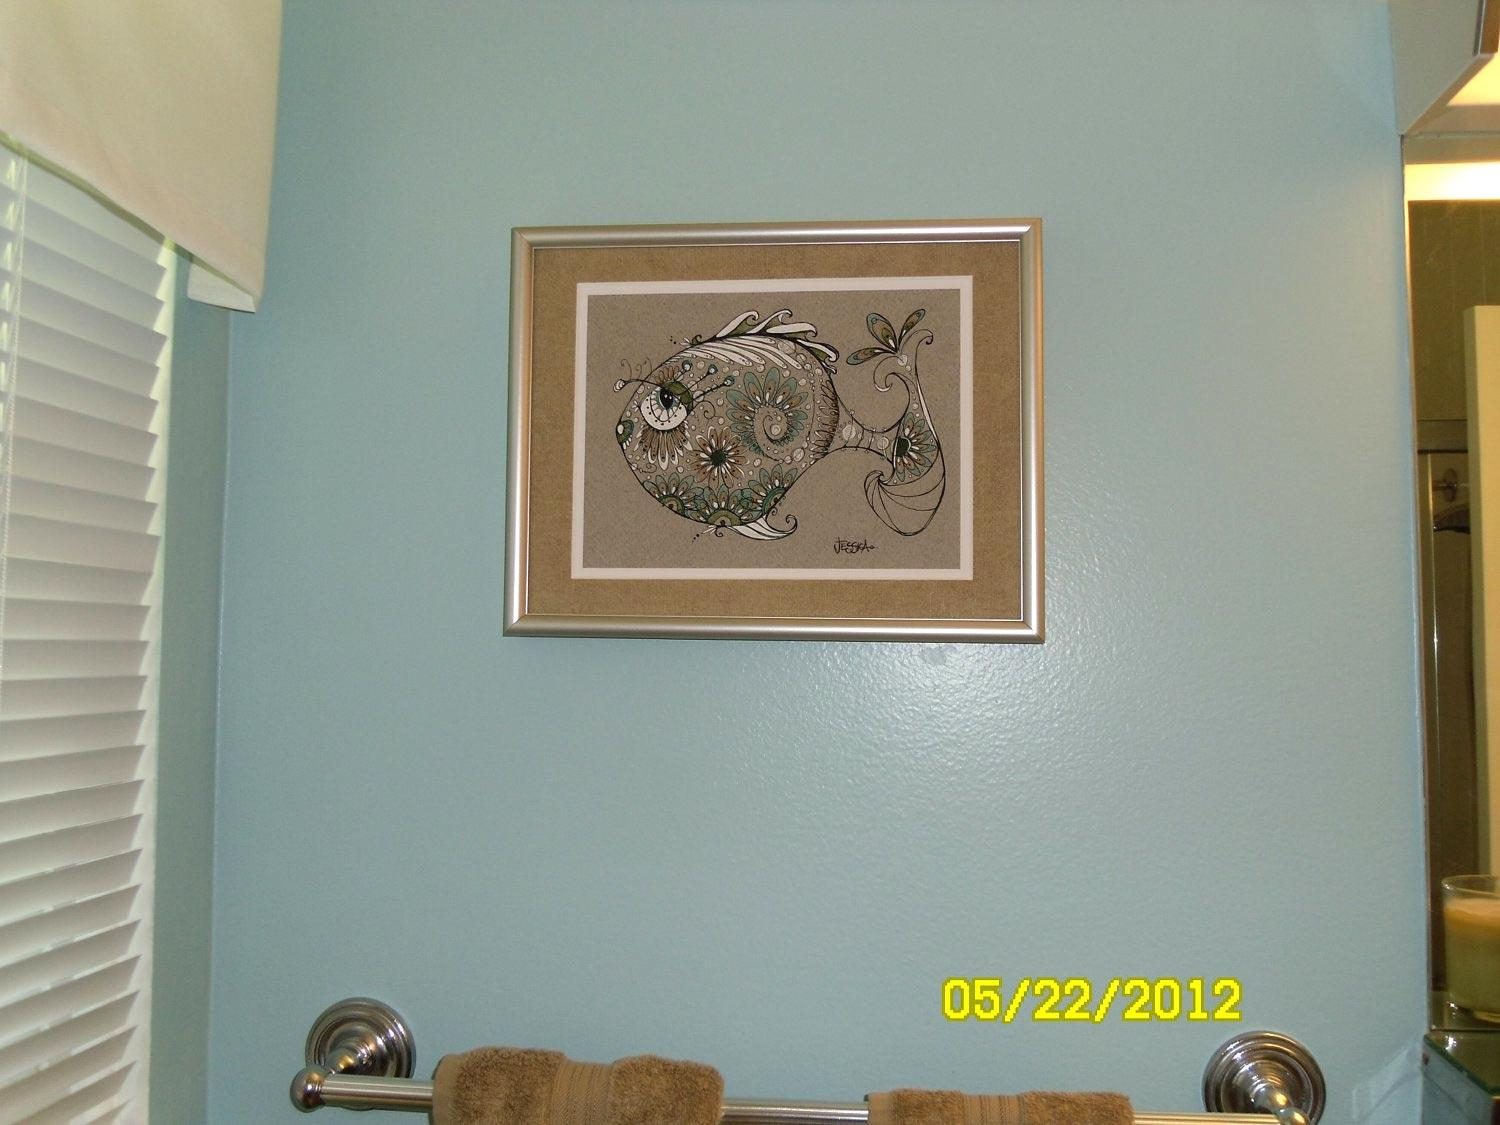 Customer Appreciation Photo – George – Yes, He's A Pretty Fish Regarding Bathroom Wall Hangings (Image 15 of 20)